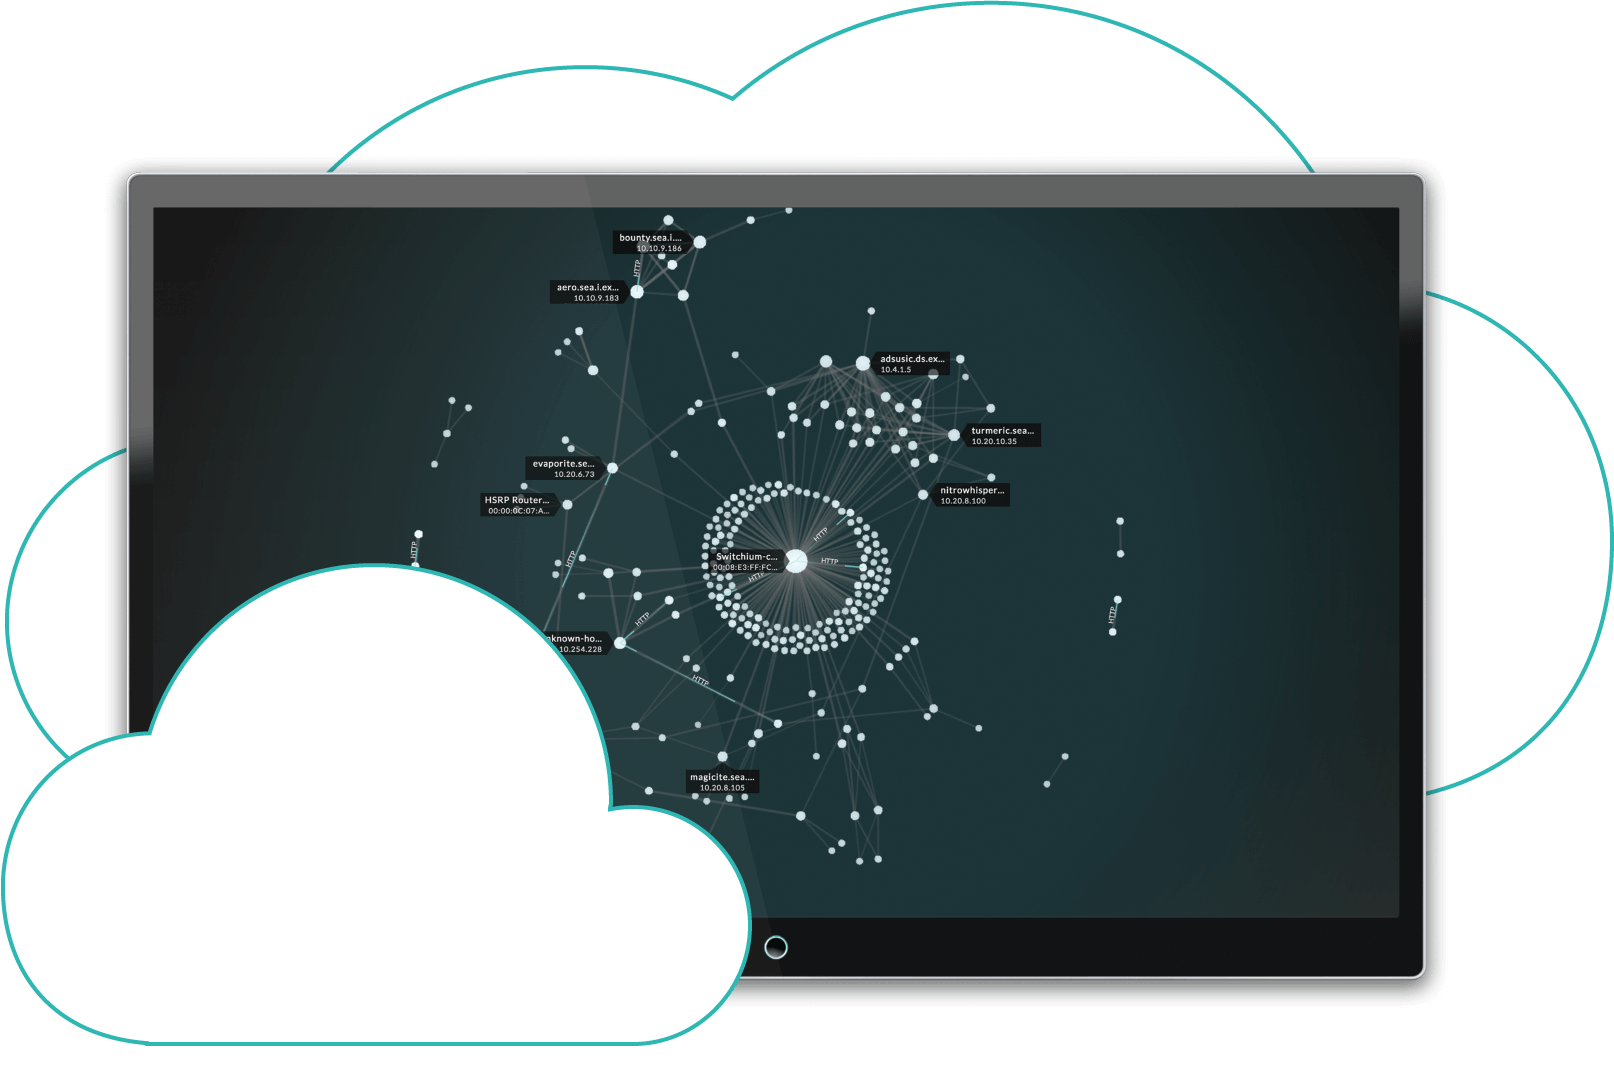 Cloud with ExtraHop dashboard